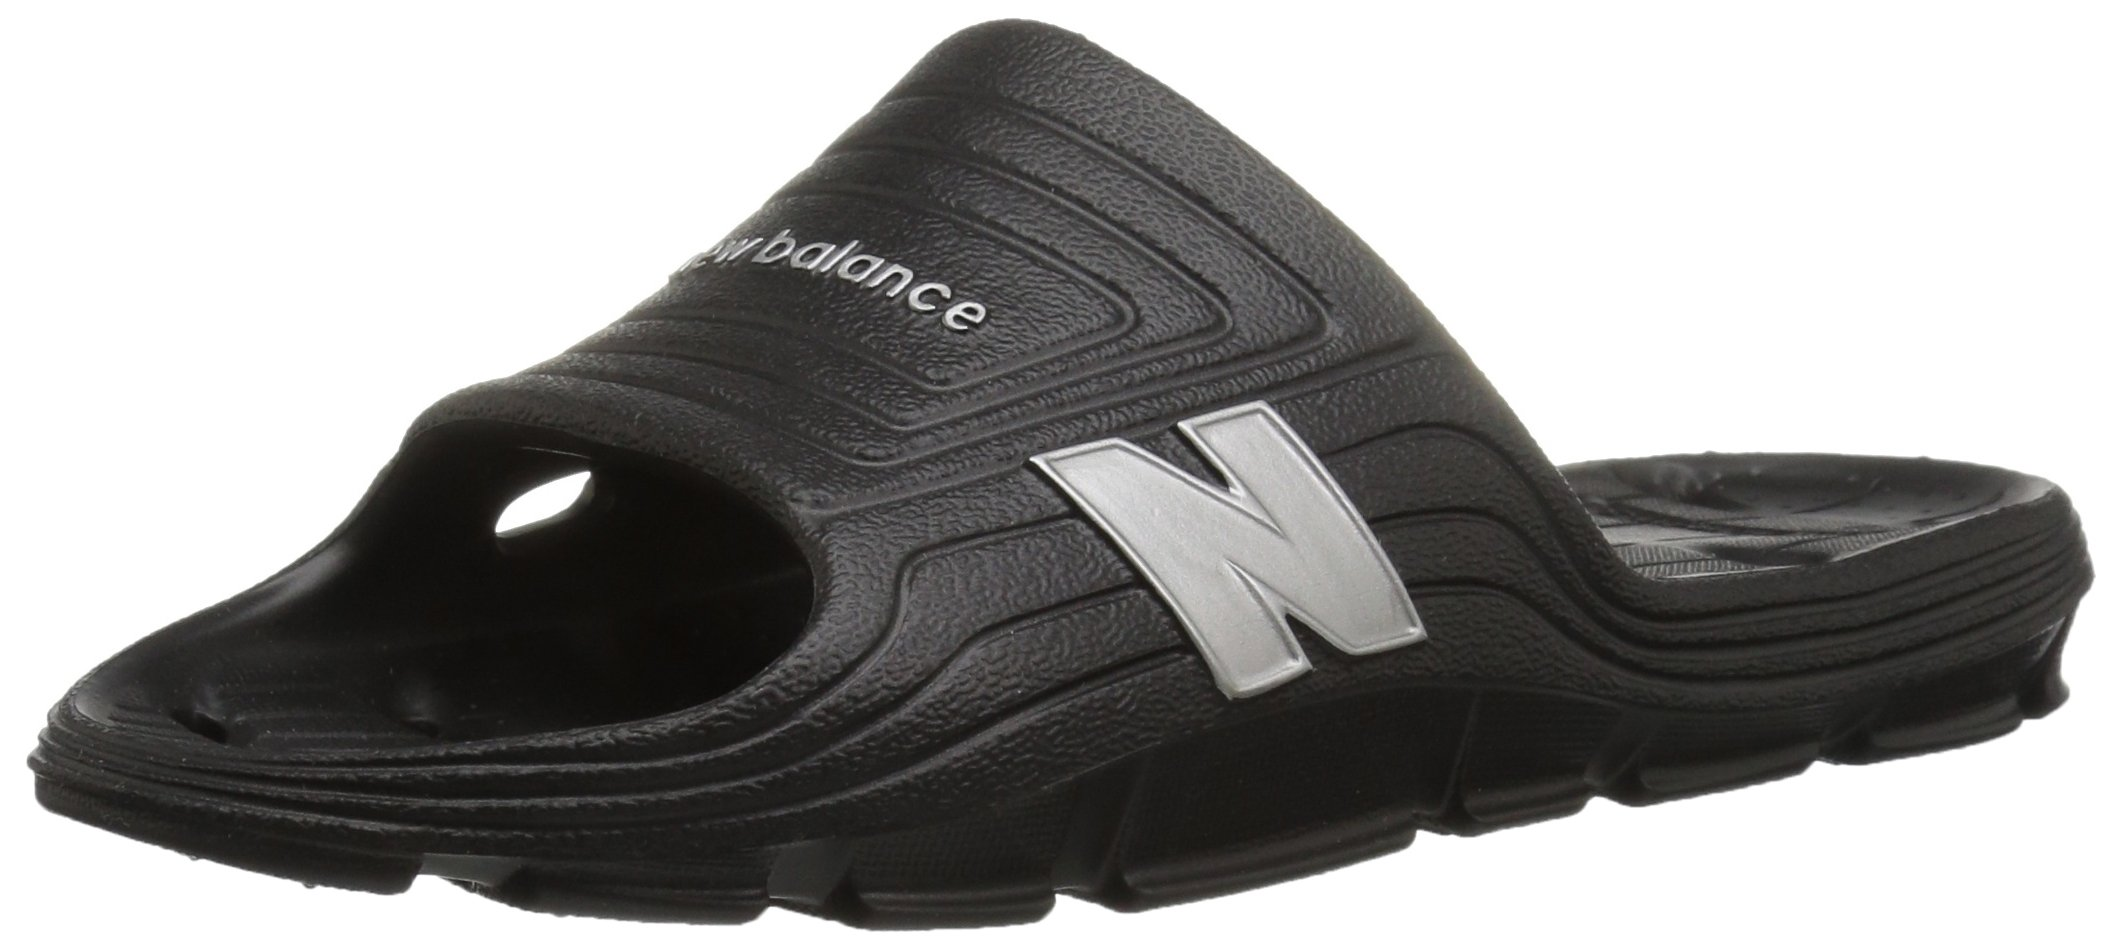 New Balance Men's Float Slide, Black/Silver, 10 D US by New Balance